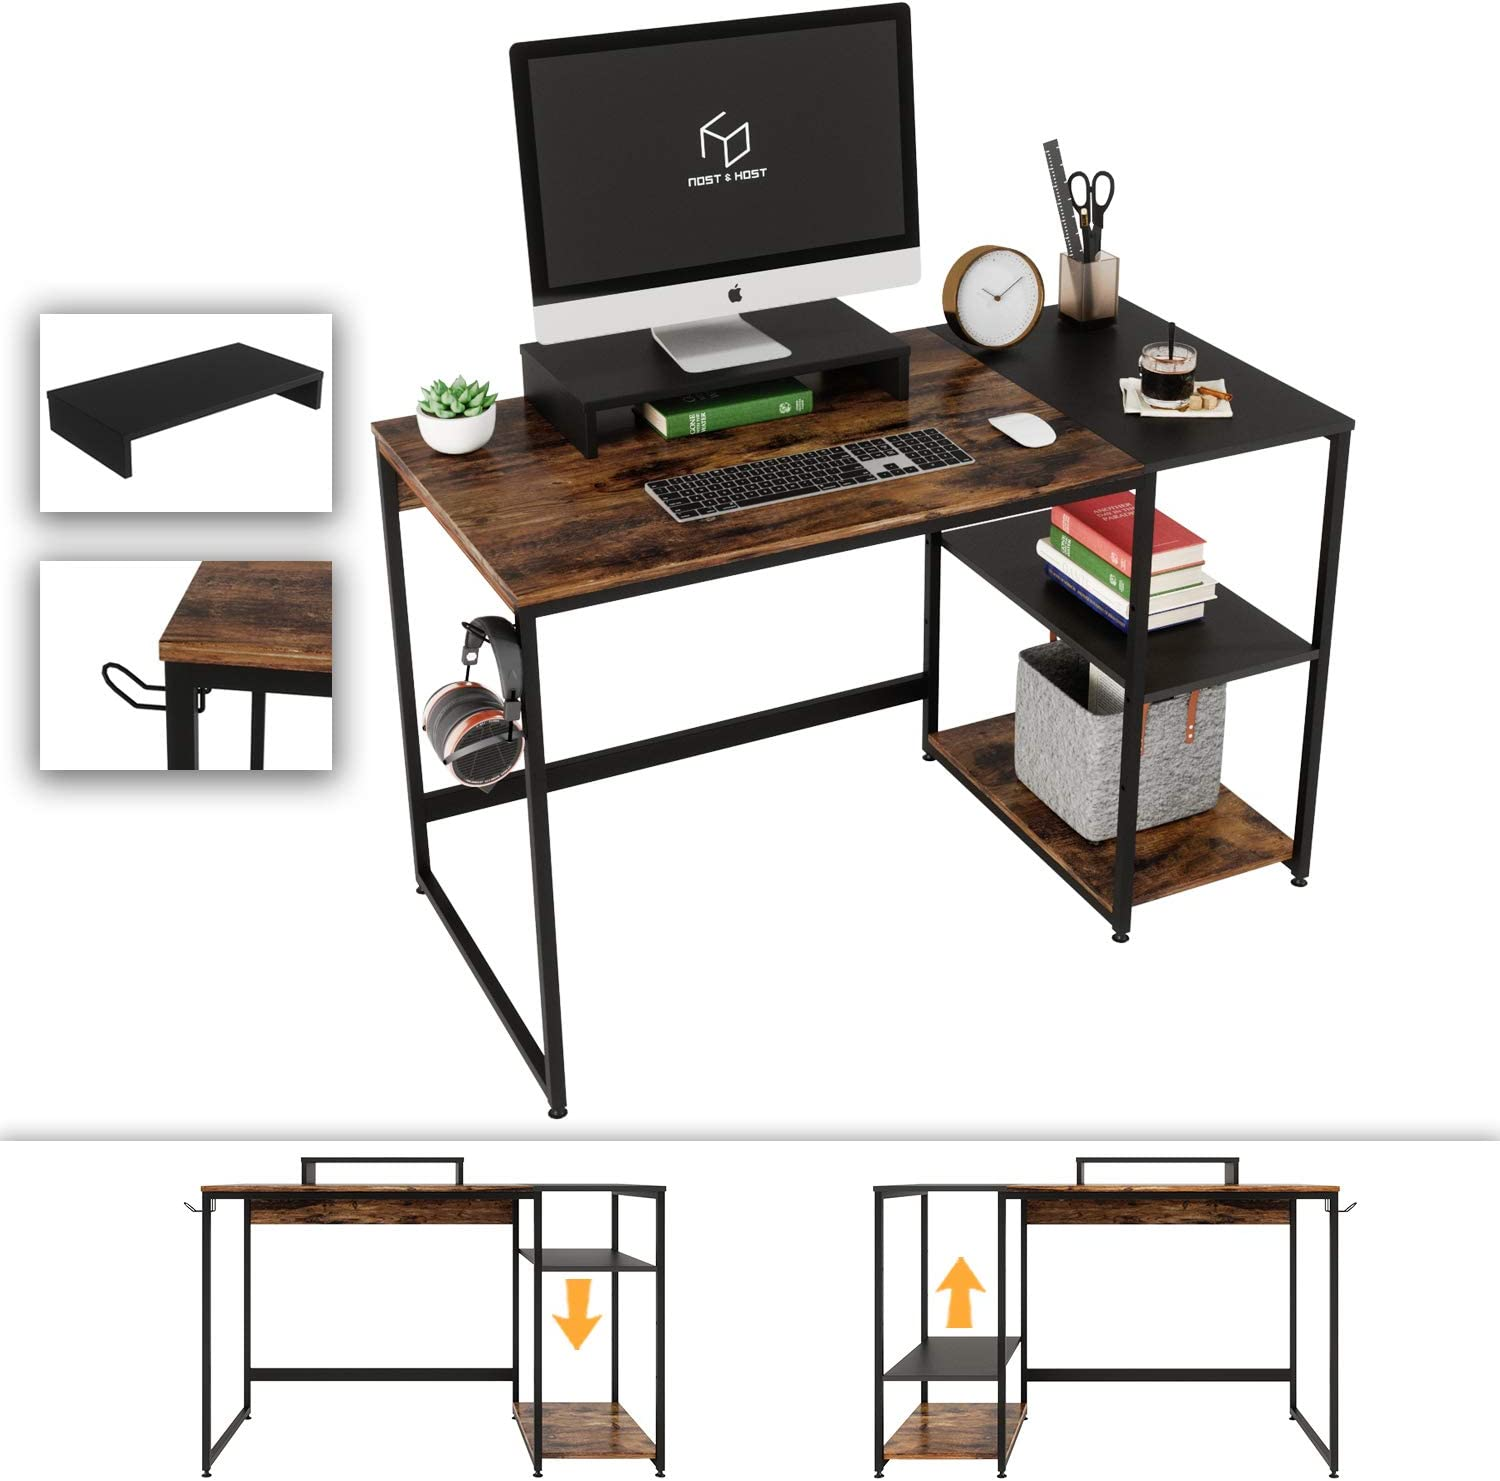 Nost & Host Computer Desk with Storage Shelves and Free Large Monitor Stand, Sturdy Wooden Modern Industrial Home Office PC Laptop Study Writing Table Workstation, 47.2 inches, Rustic Brown and Black